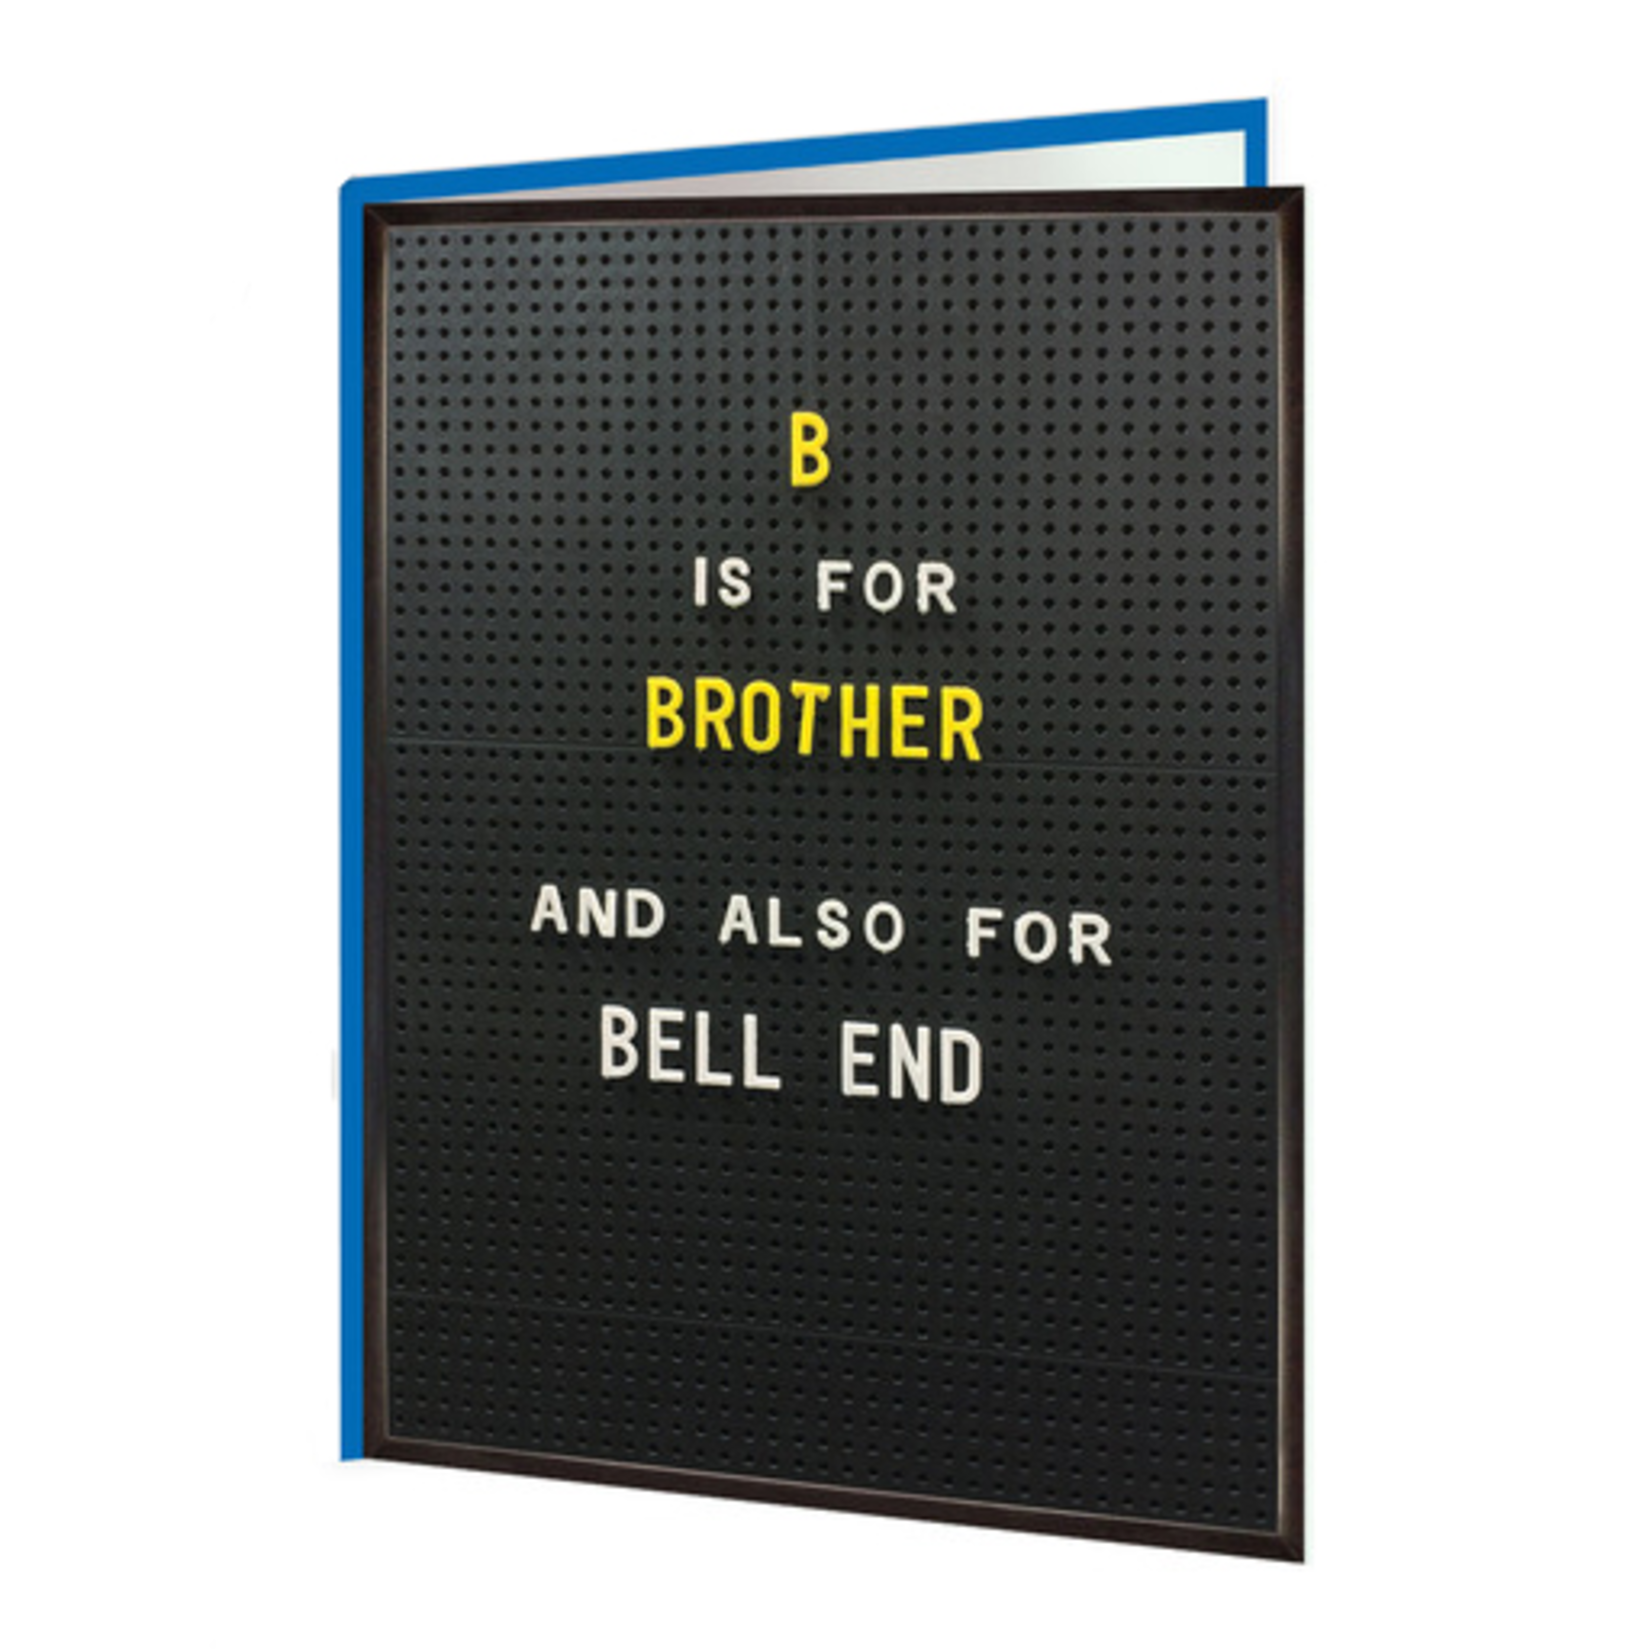 Brainbox Candy B is for Brother Card